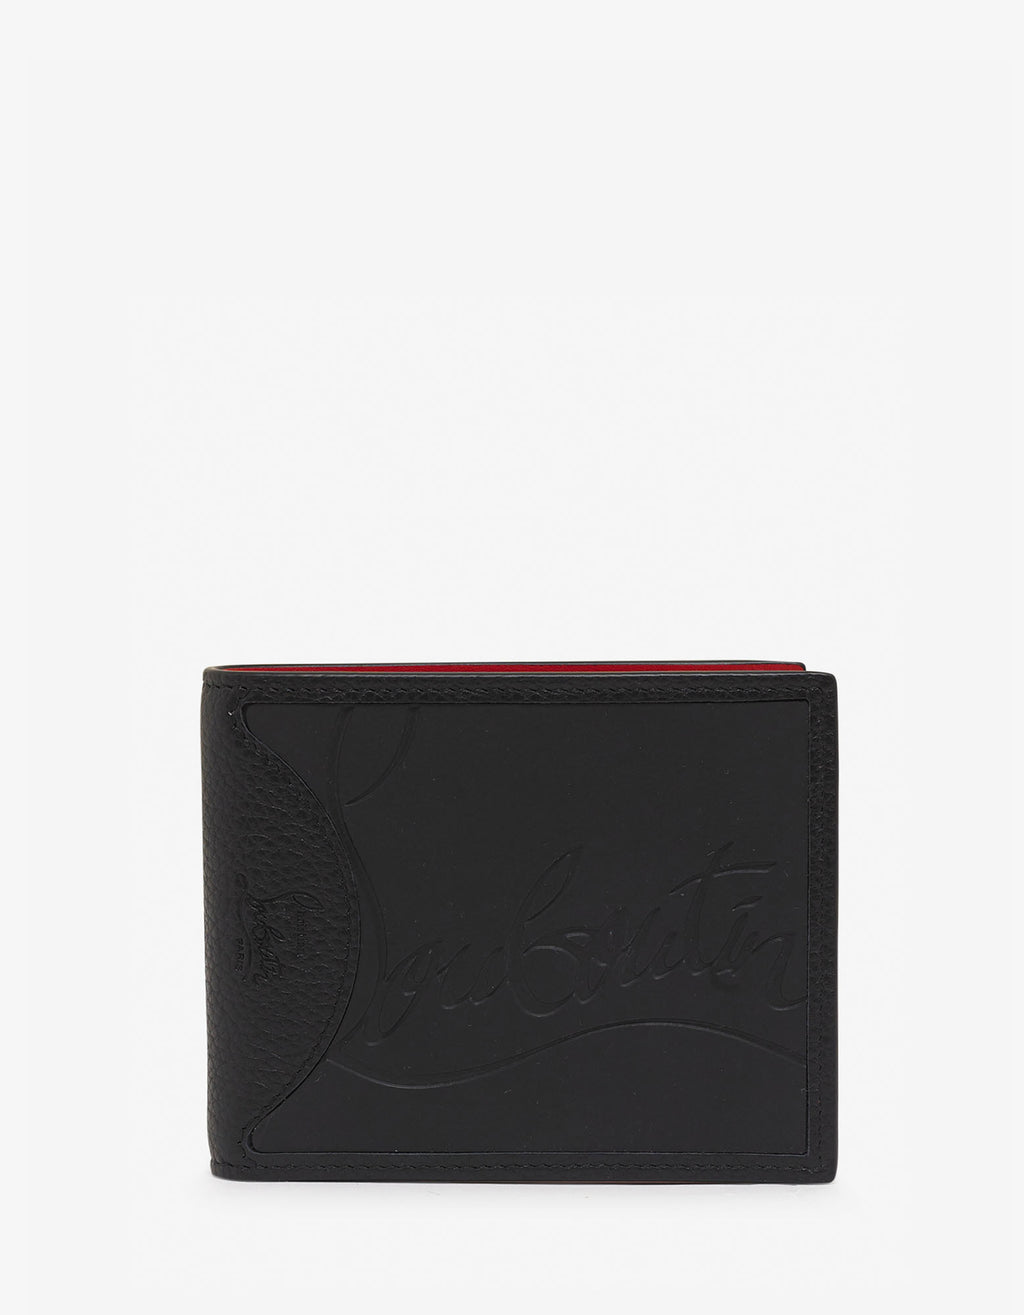 Coolcard Sneakers Sole Black Billfold Wallet